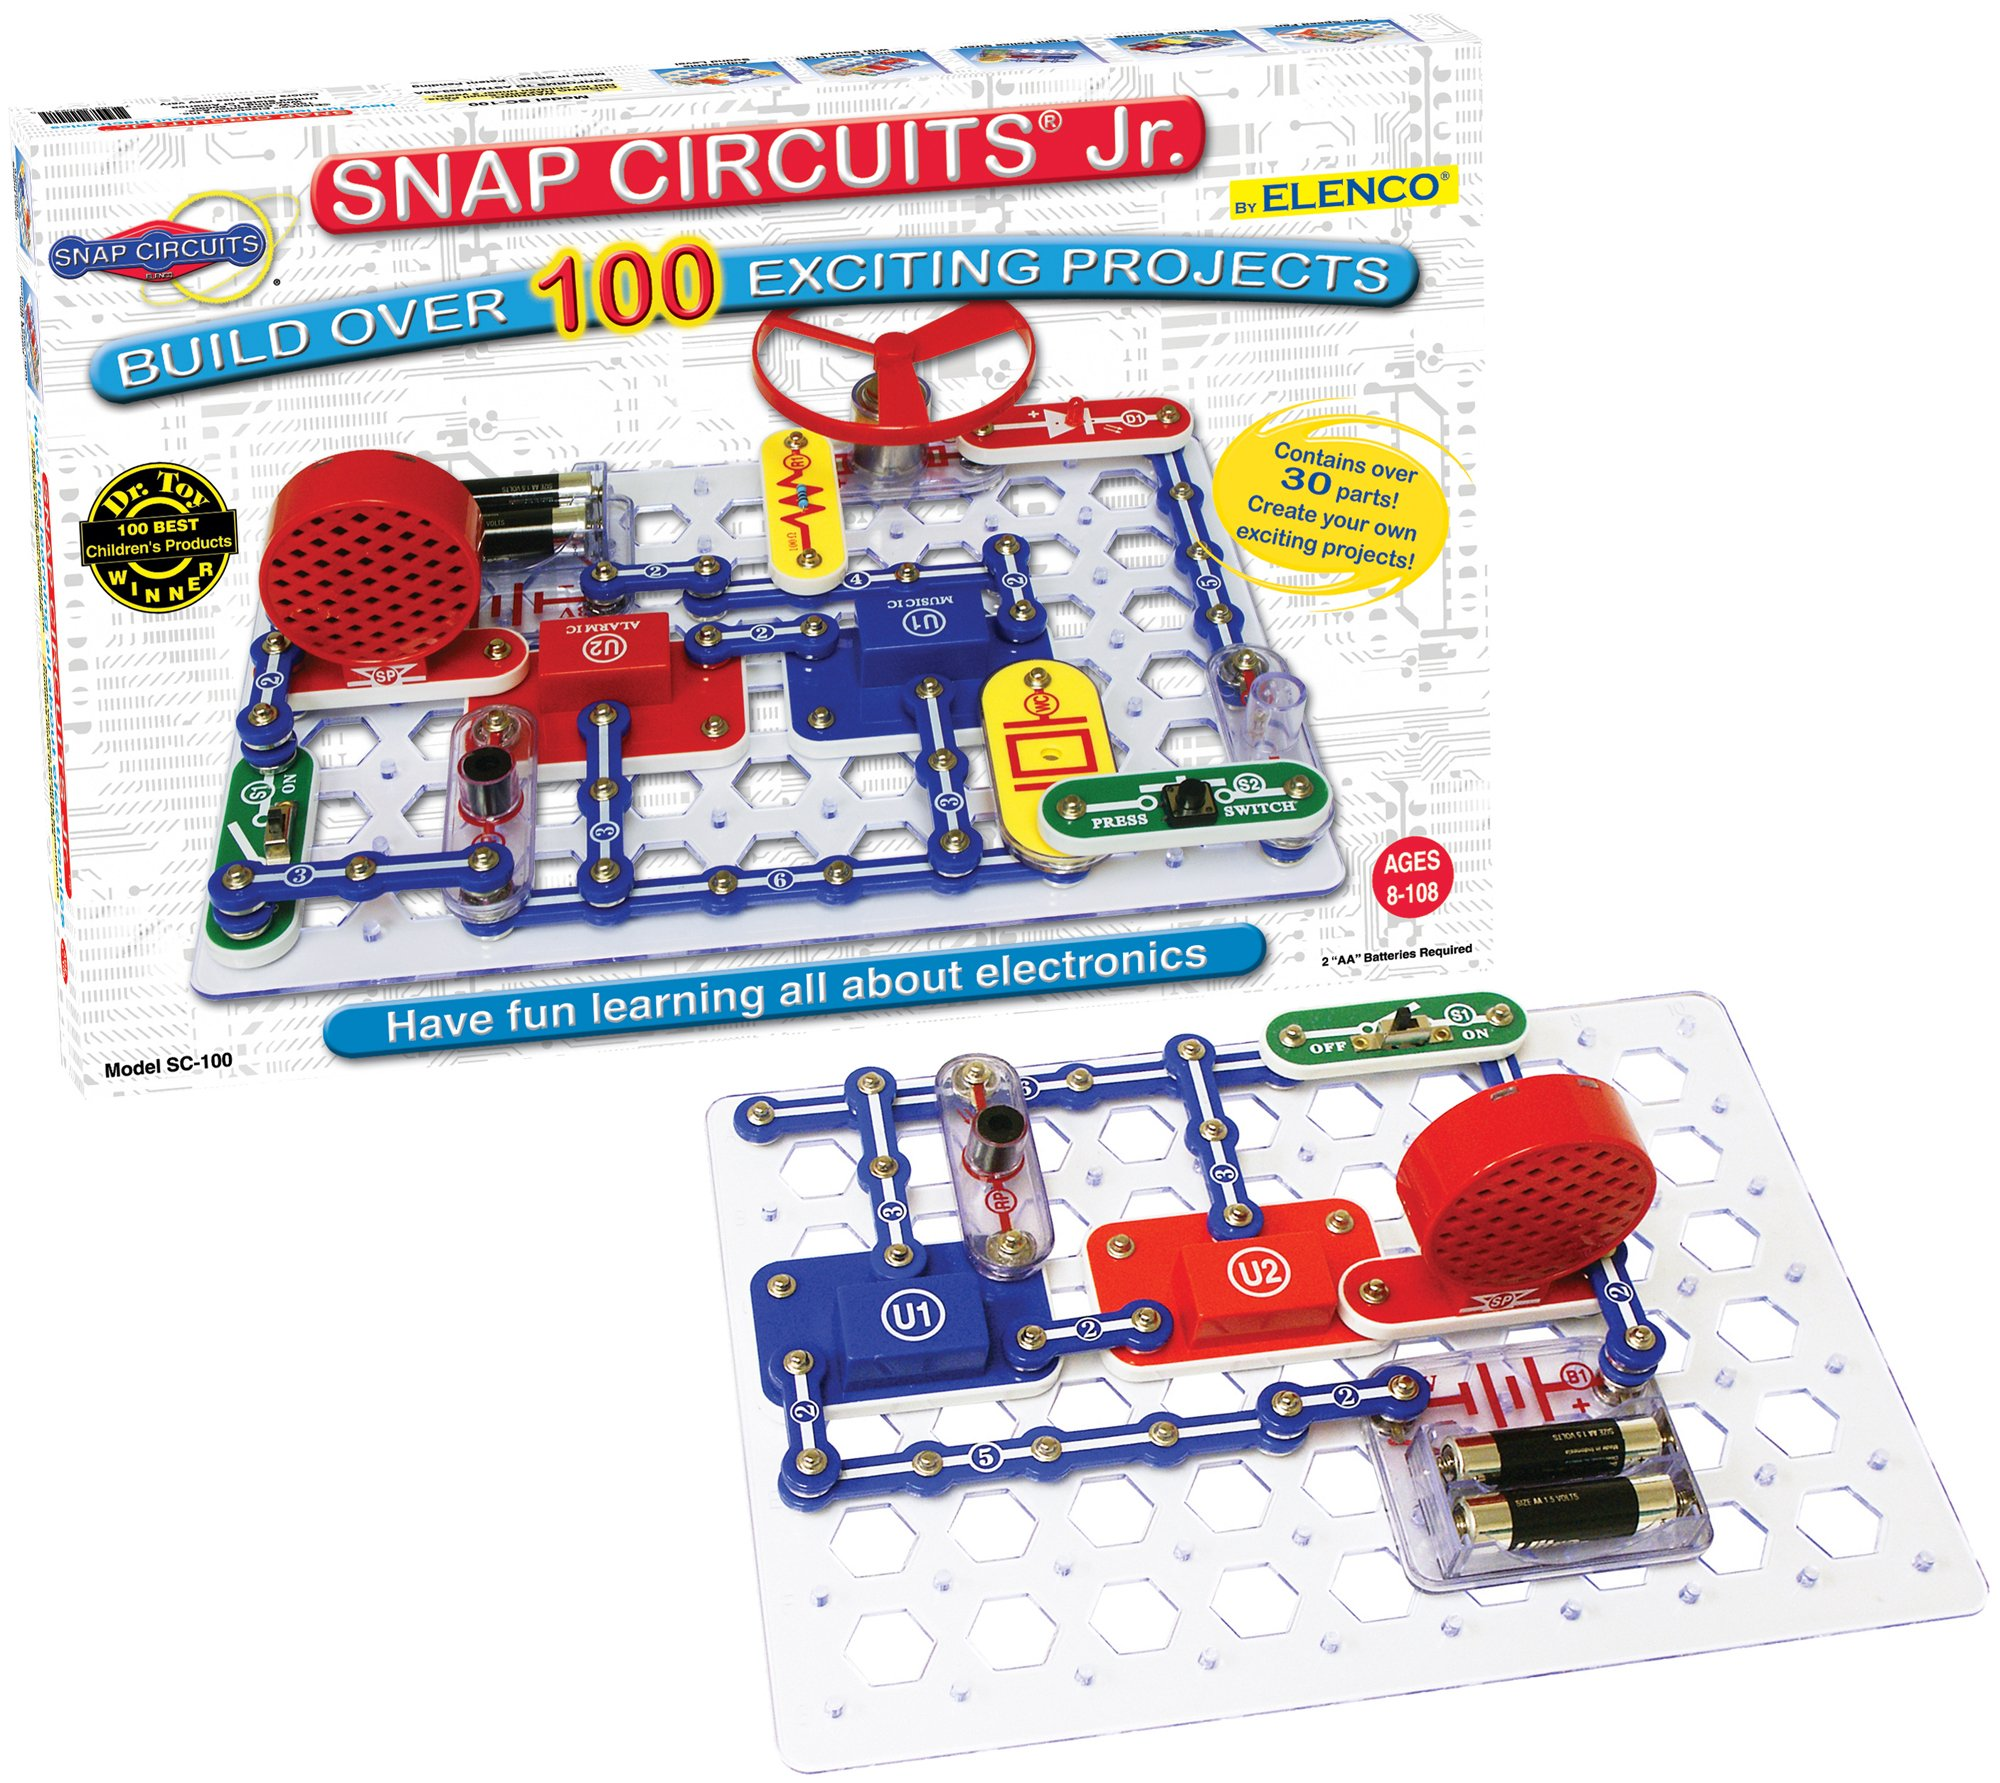 Buy Electronics Discovery Snap Circuits Kit Now!